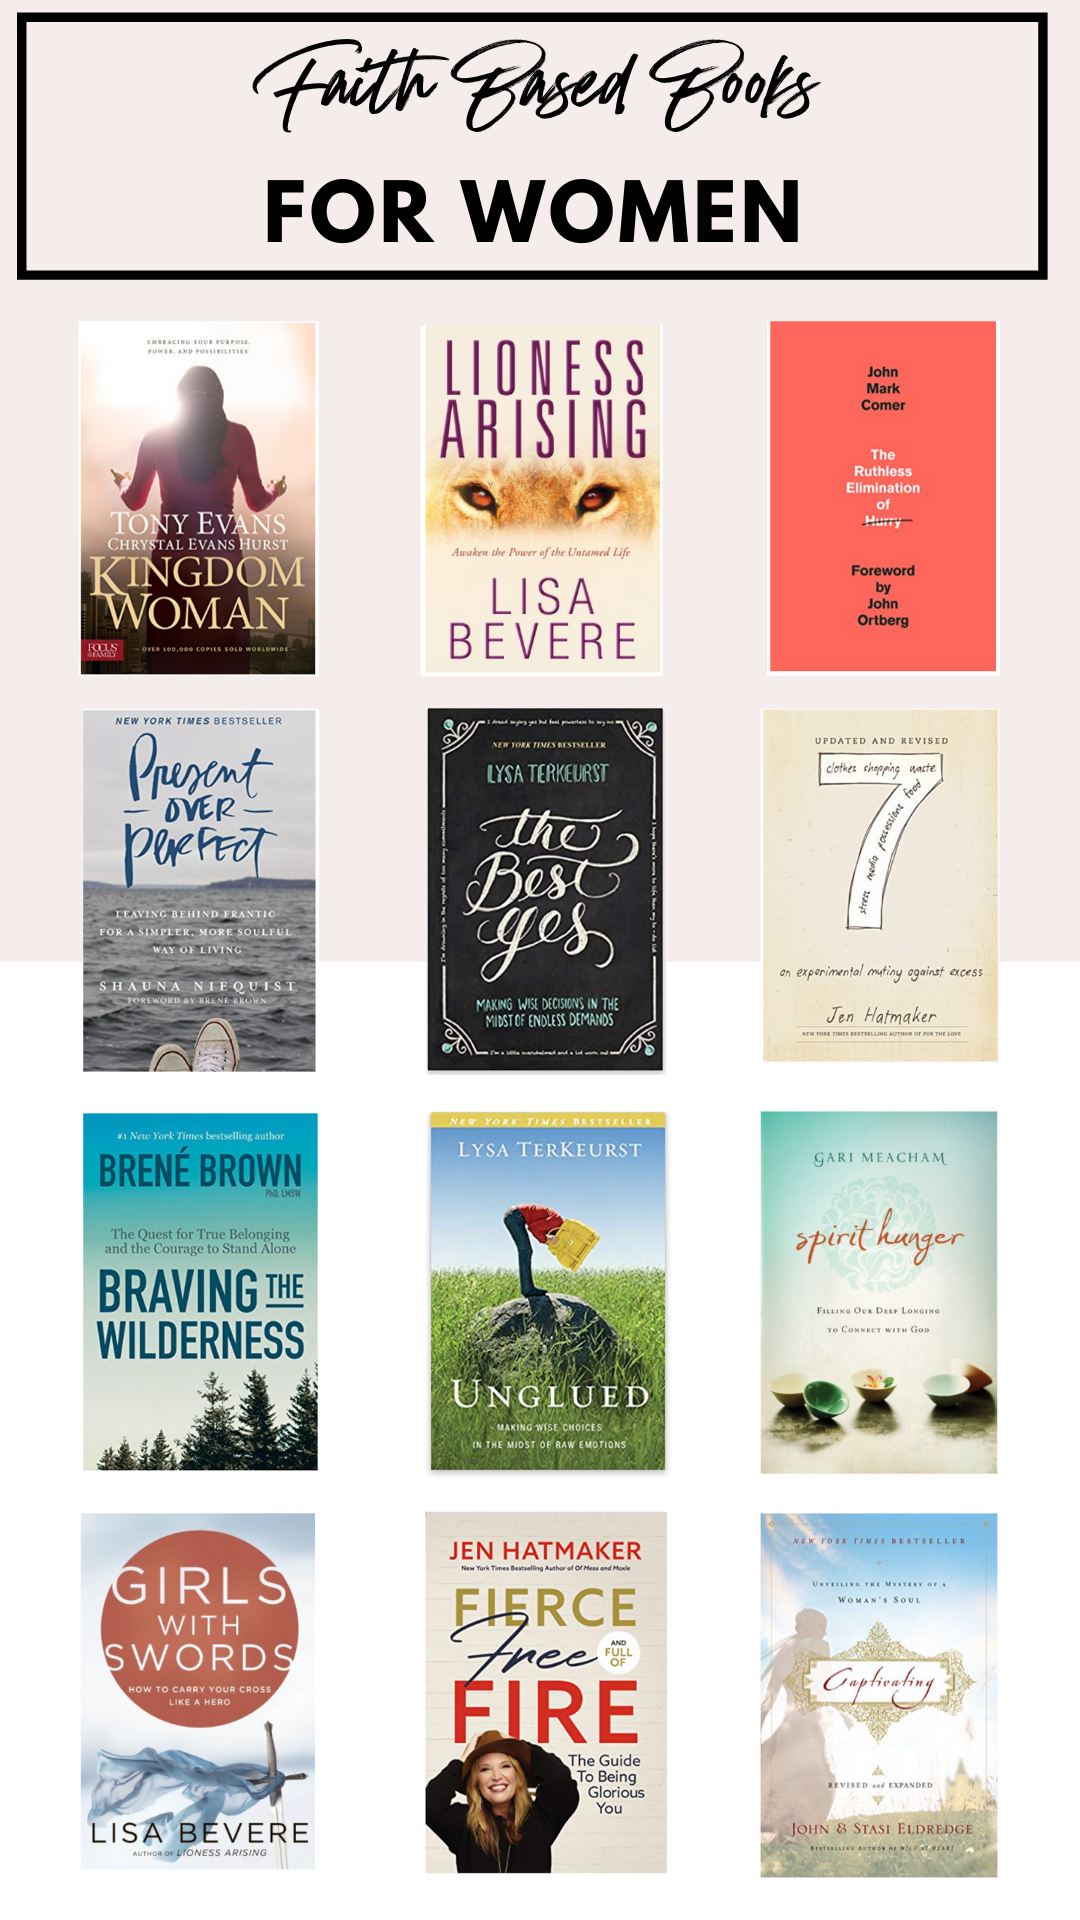 Houston Blogger Uptown with Elly Brown shares her 12 favorite faith-based books for women and why she loves them. Click here for the full list!